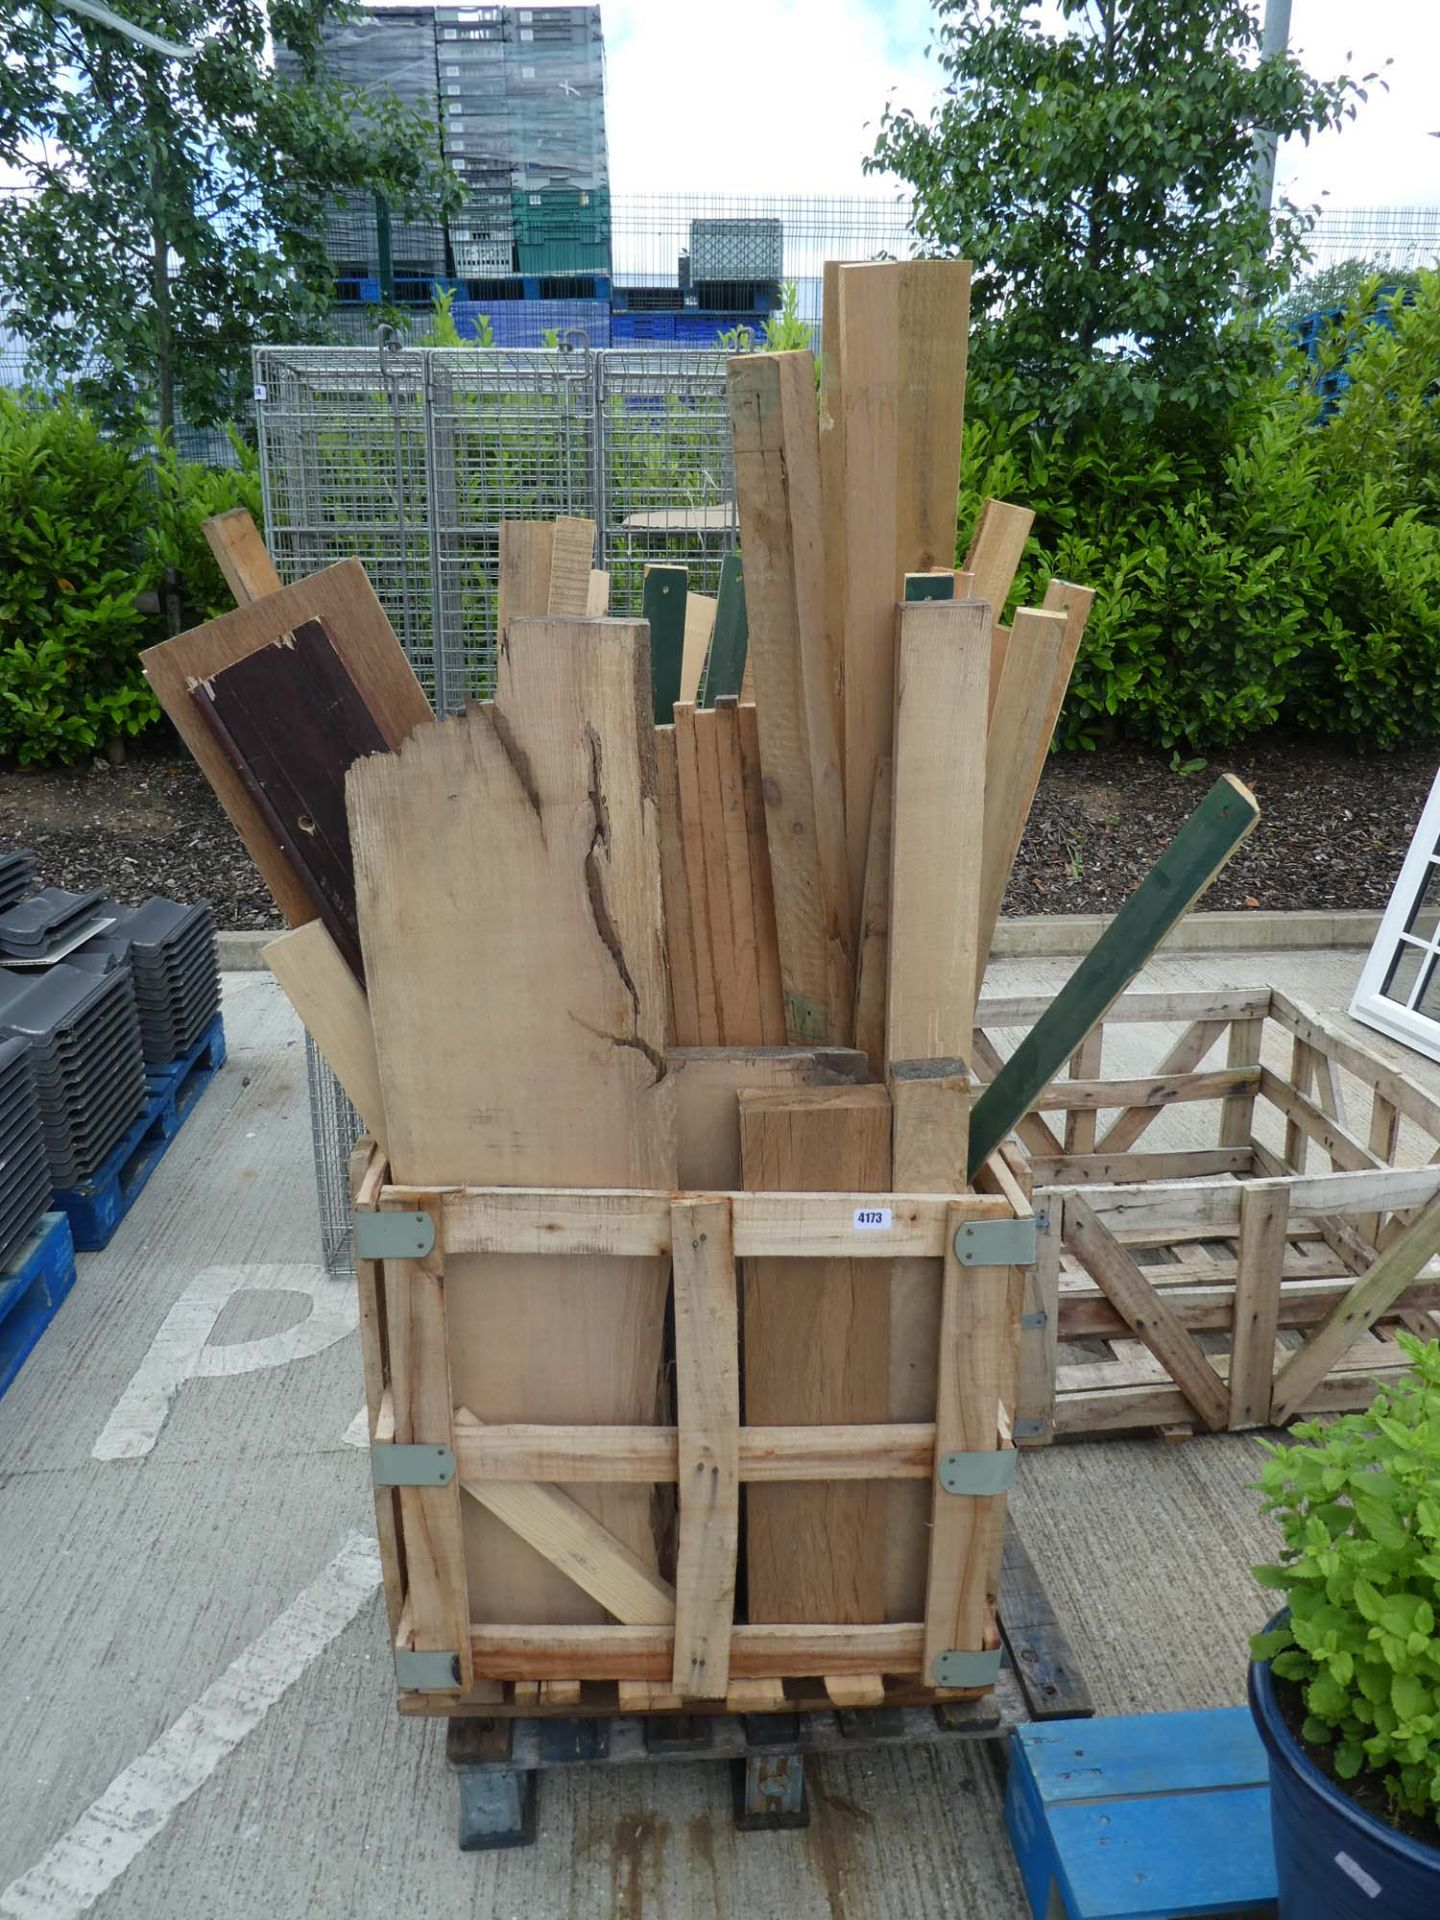 4143 Pallet of assorted timber